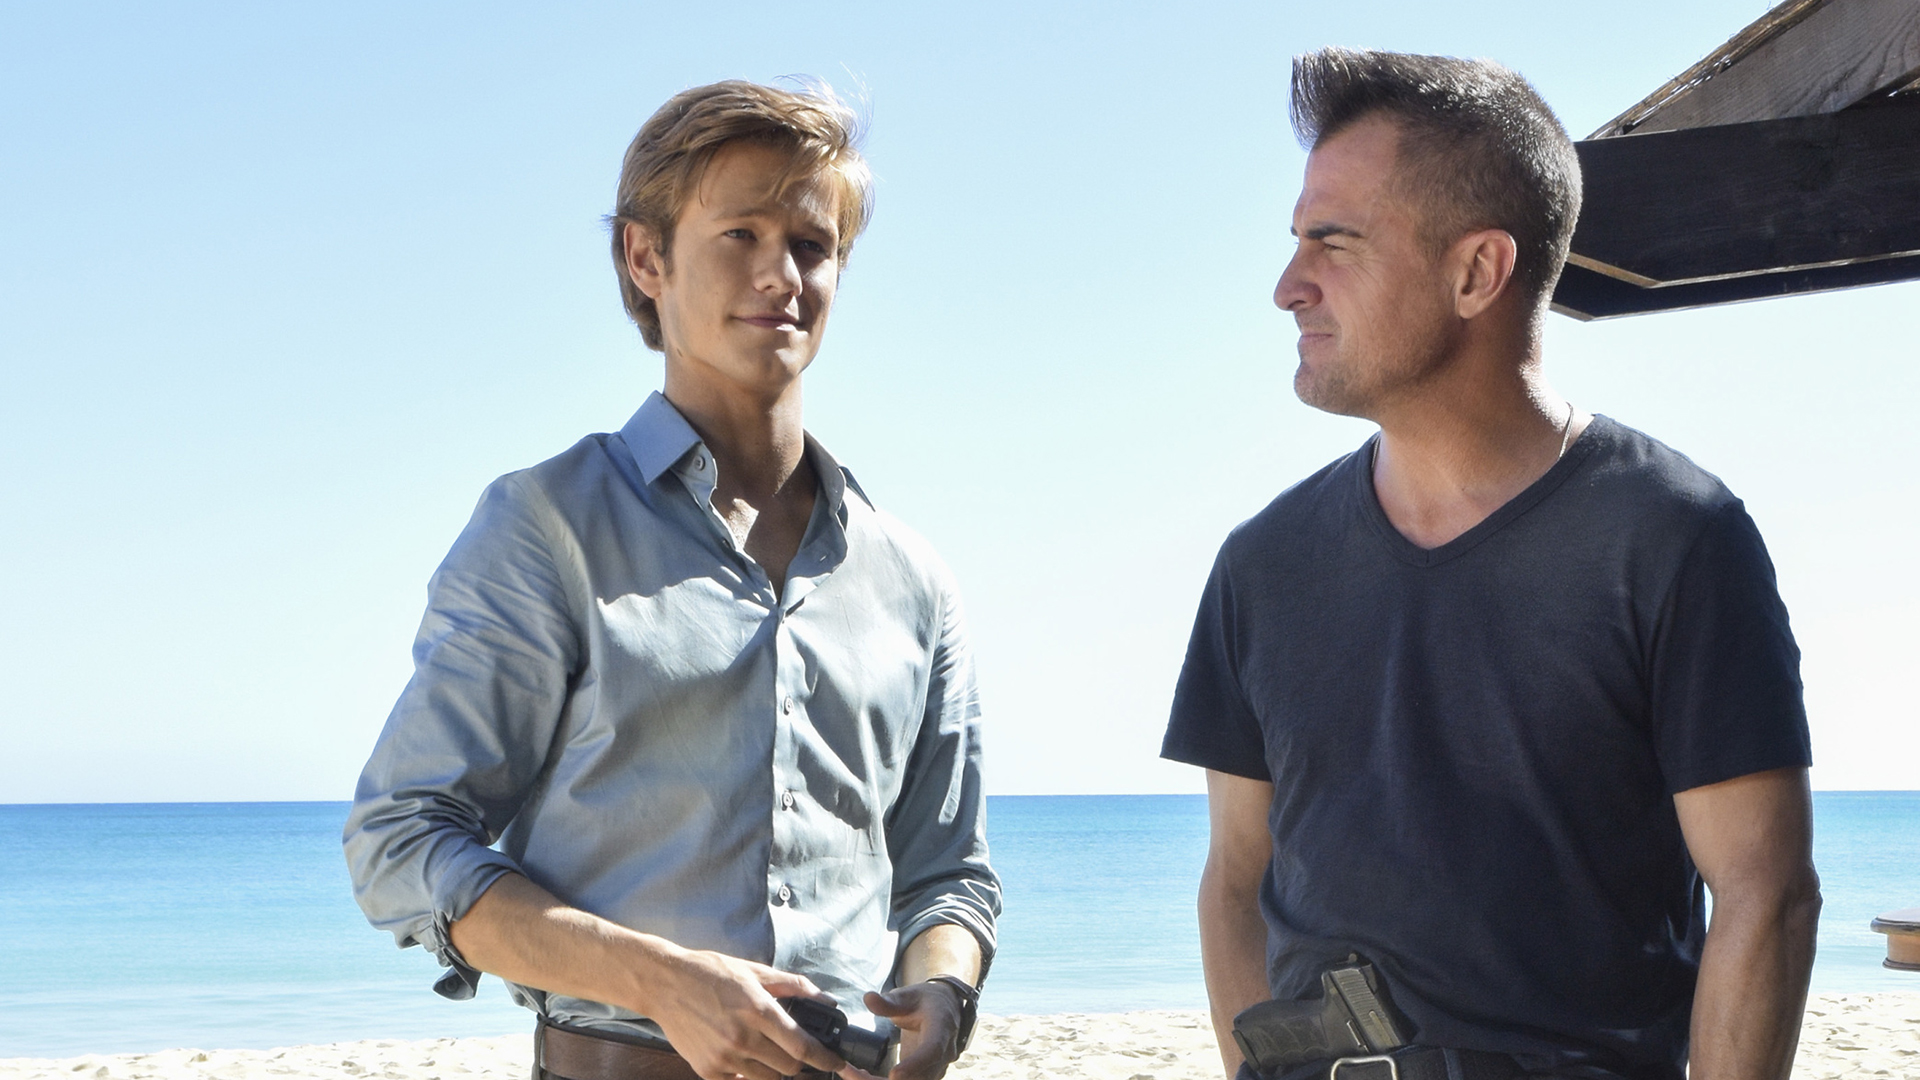 Mac and Jack have a chat on the beach.